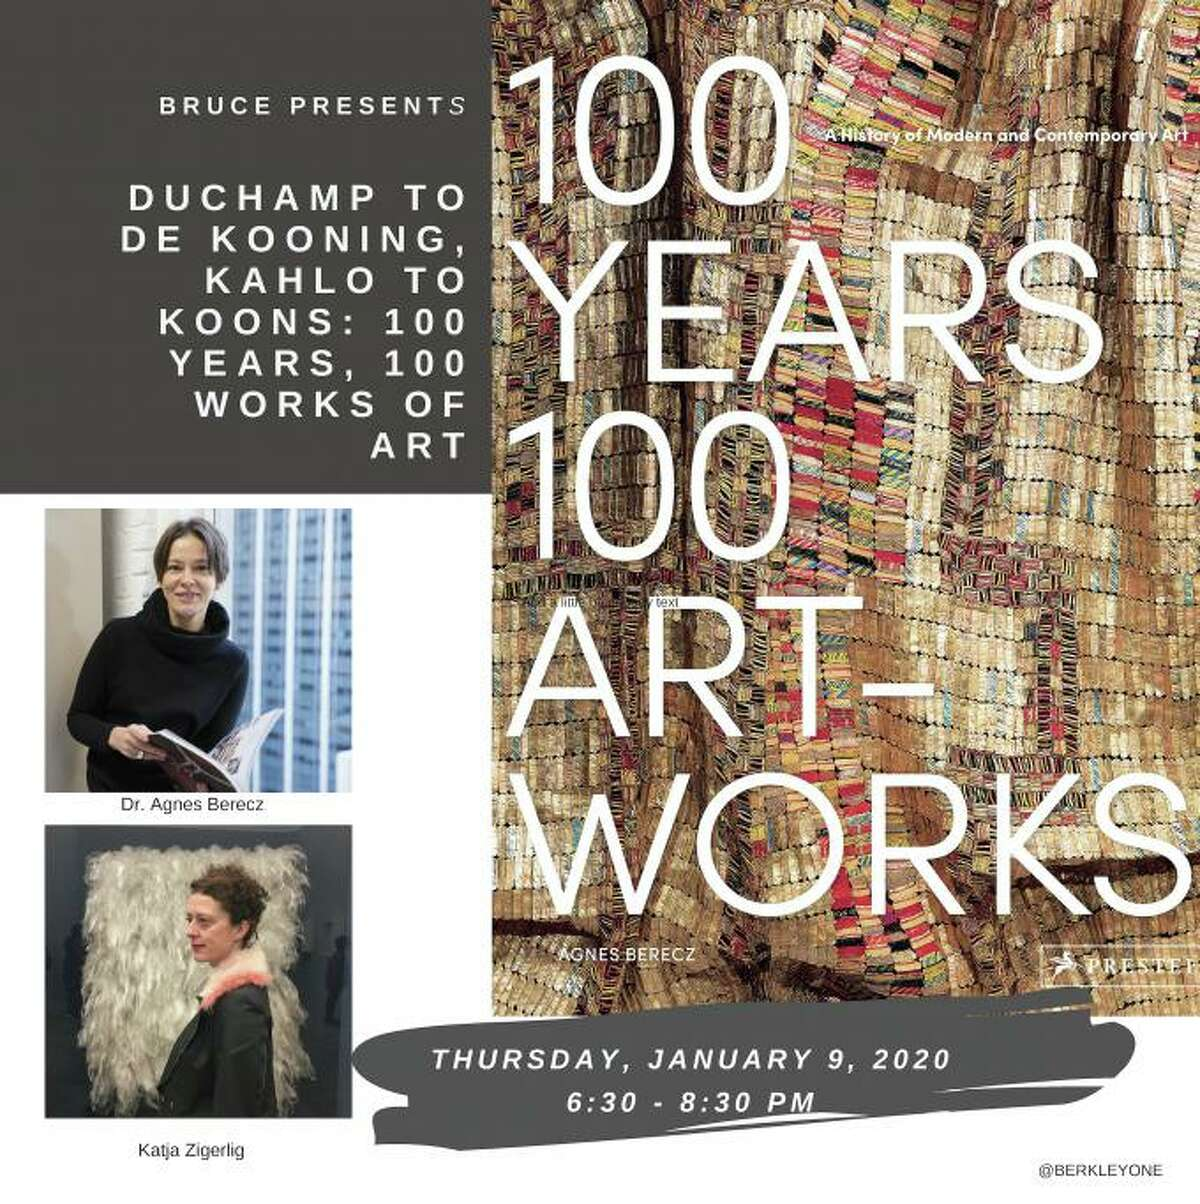 Art historian Agnes Berecz will discuss the choices she made in selecting artworks featured in her book